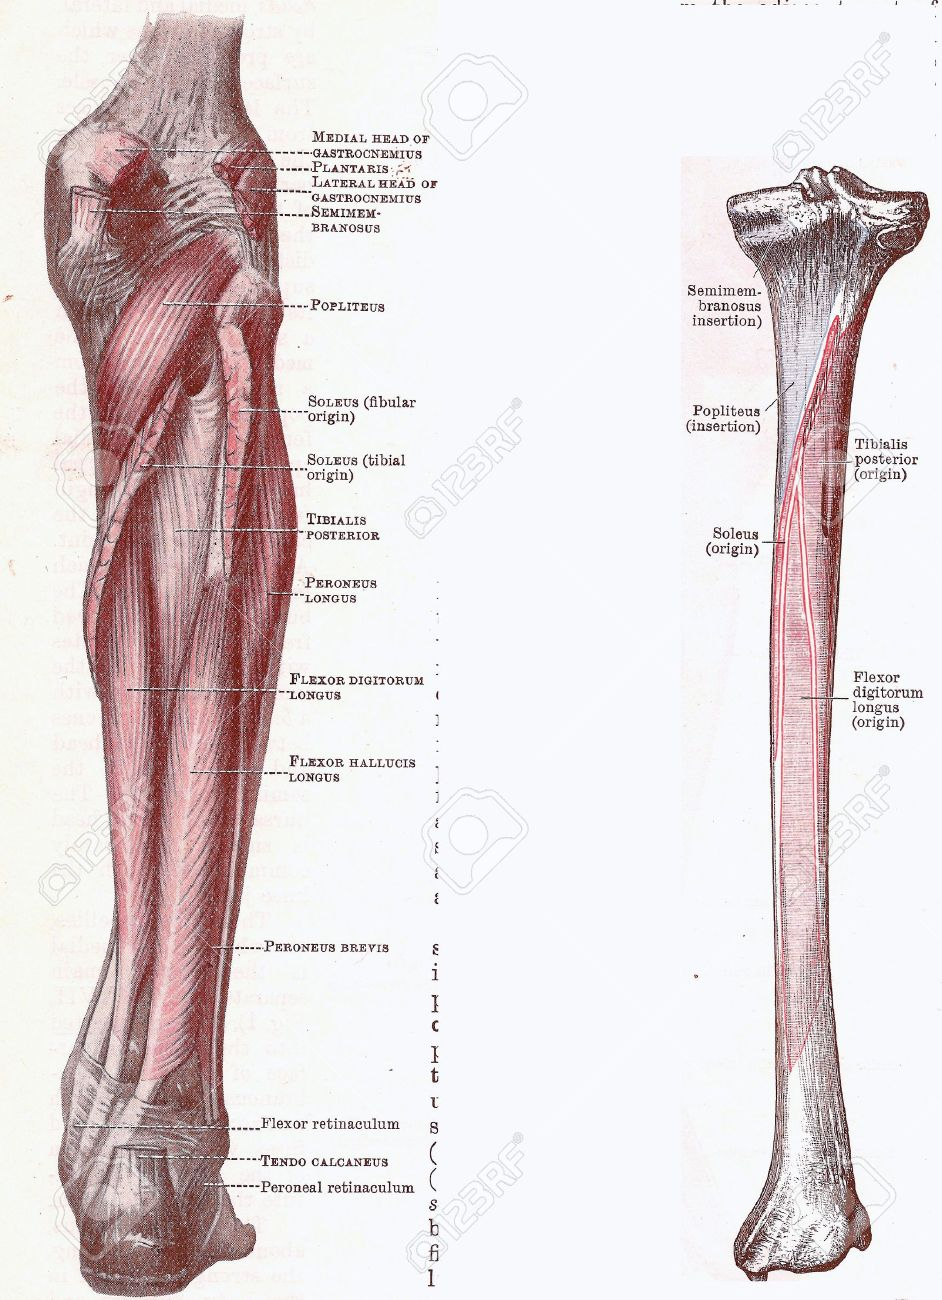 Dissection of the leg, muscles and attachments,from an early 20th century anatomy textbook, out of copyright - 5327560